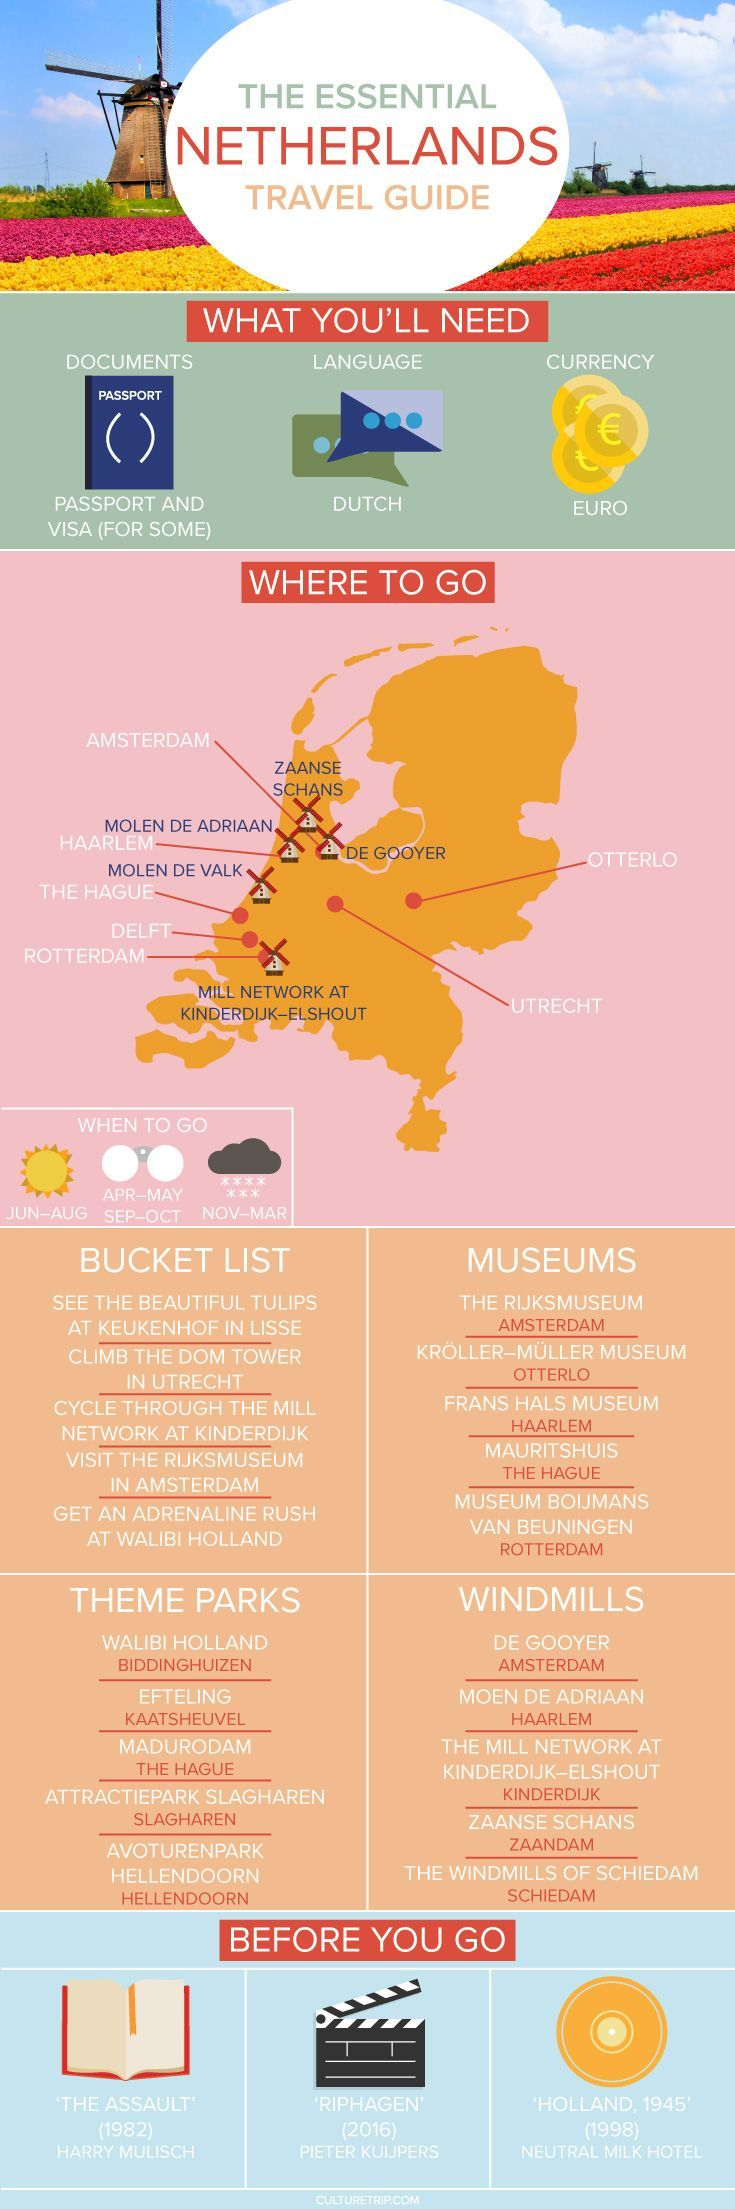 The Essential Travel Guide to The Netherlands (Infographic)|Pinterest: @theculturetrip